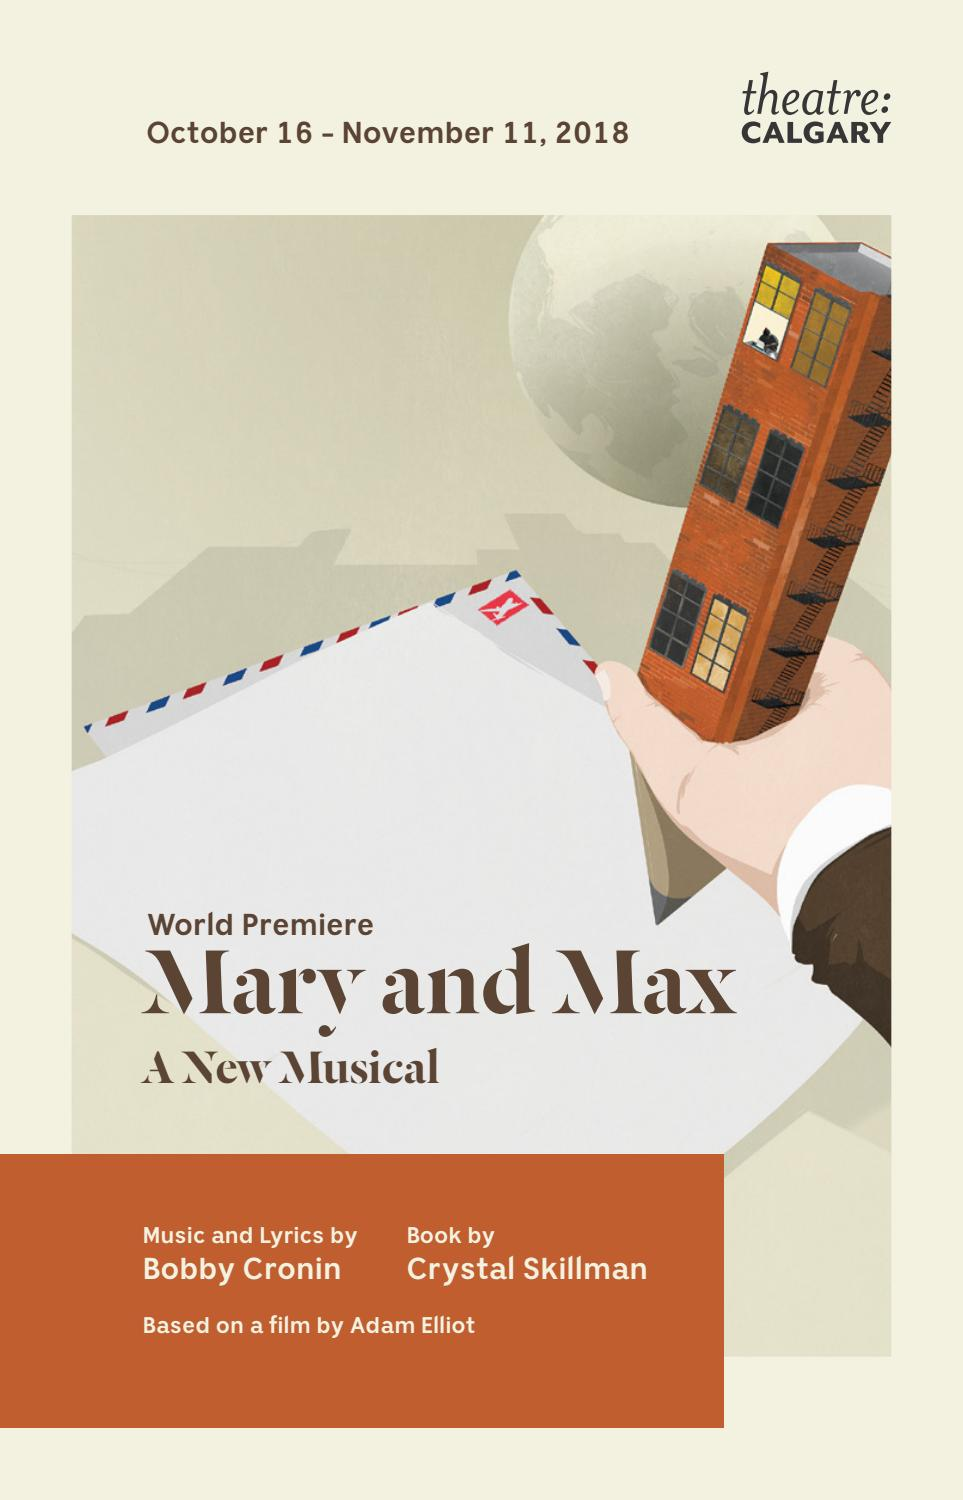 2018 Mary And Max A New Musical House Programme By Theatre Calgary Issuu